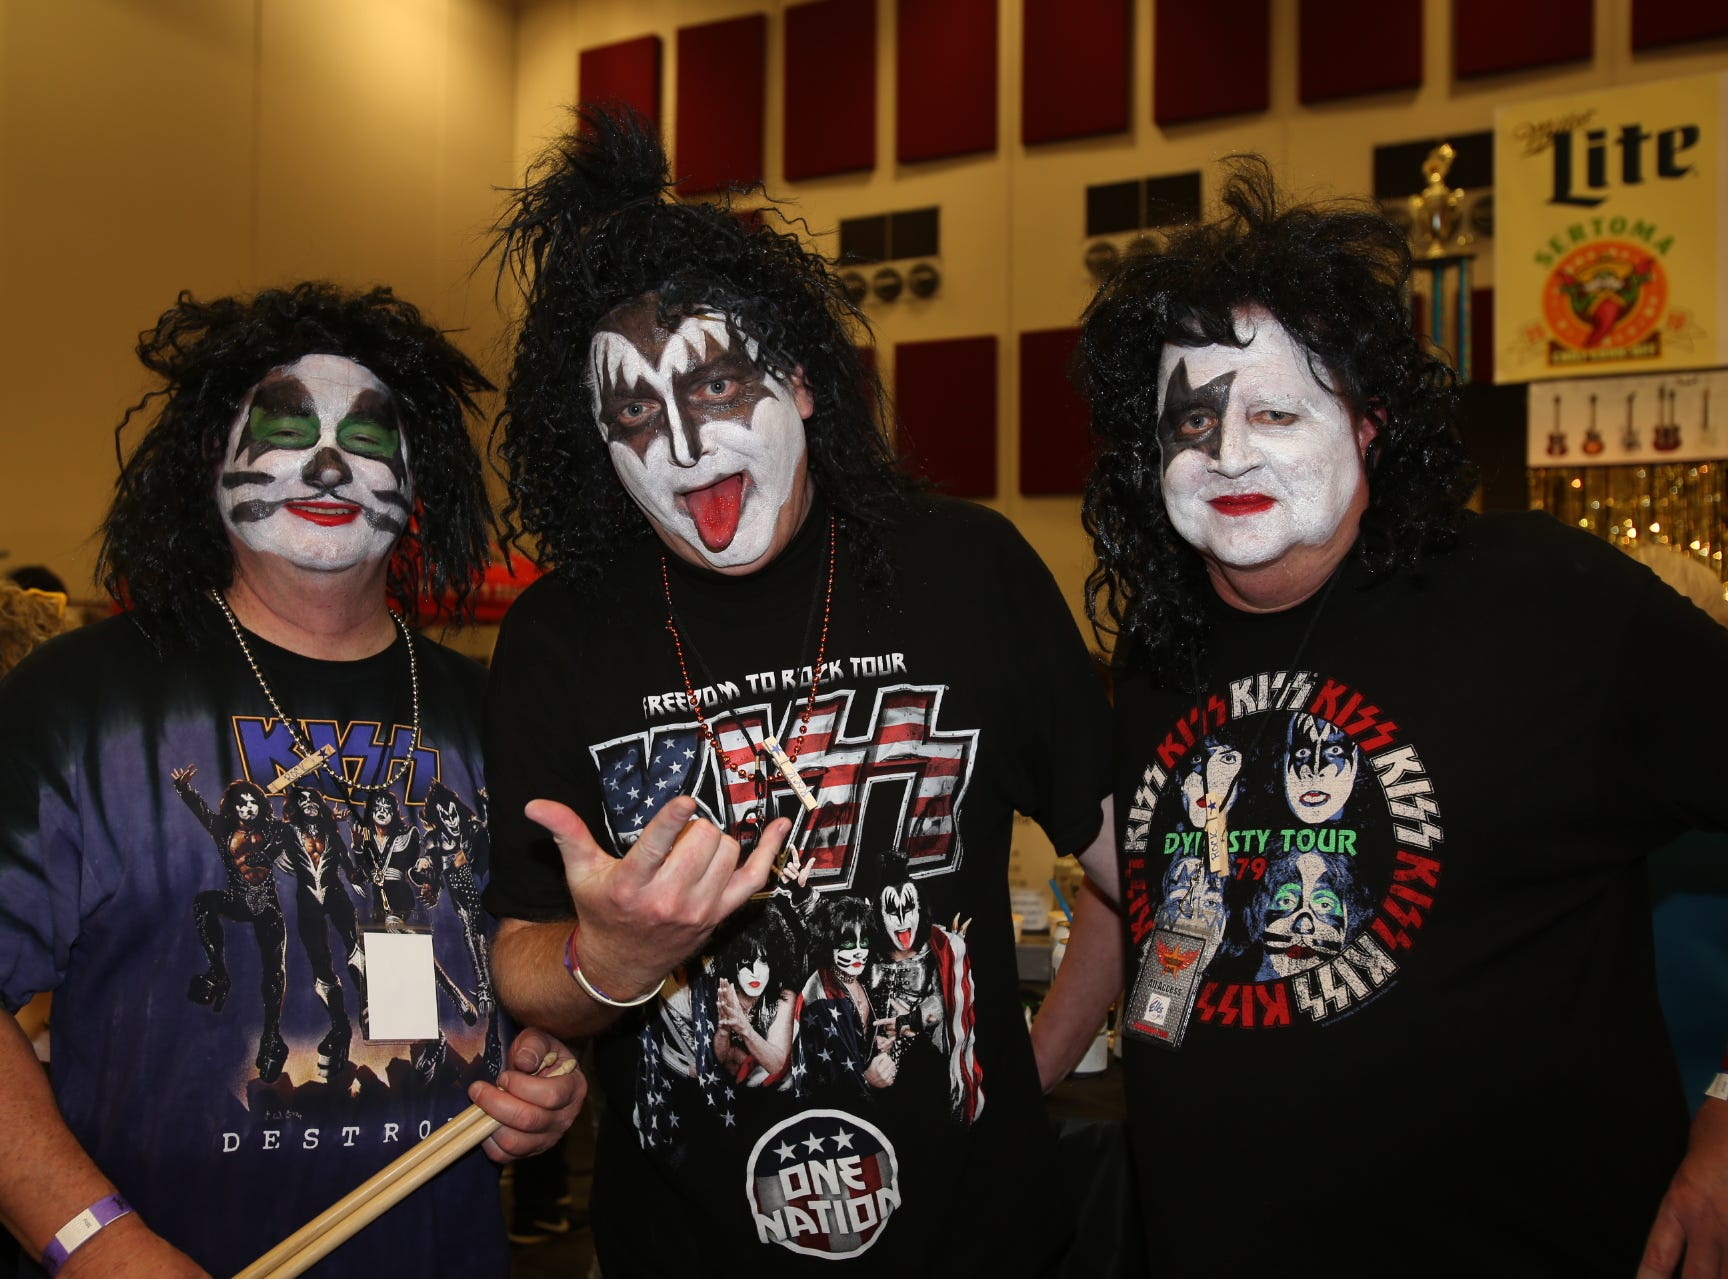 These men said they were Peter Criss, Gene Simmons and Paul Stanley, LOL